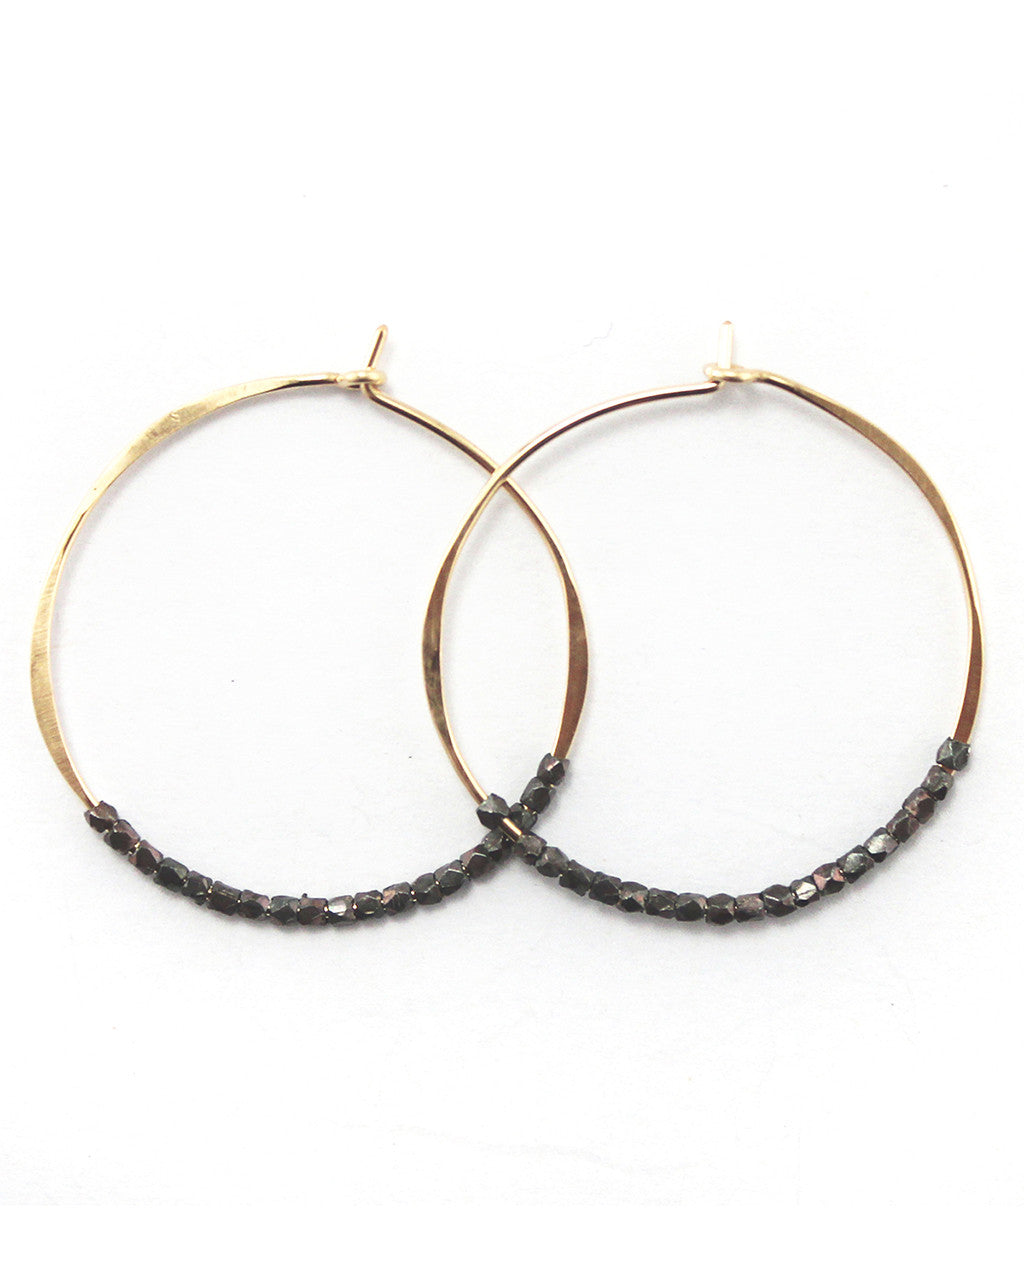 Faceted Bead Hoop Earrings | Fail Jewelry